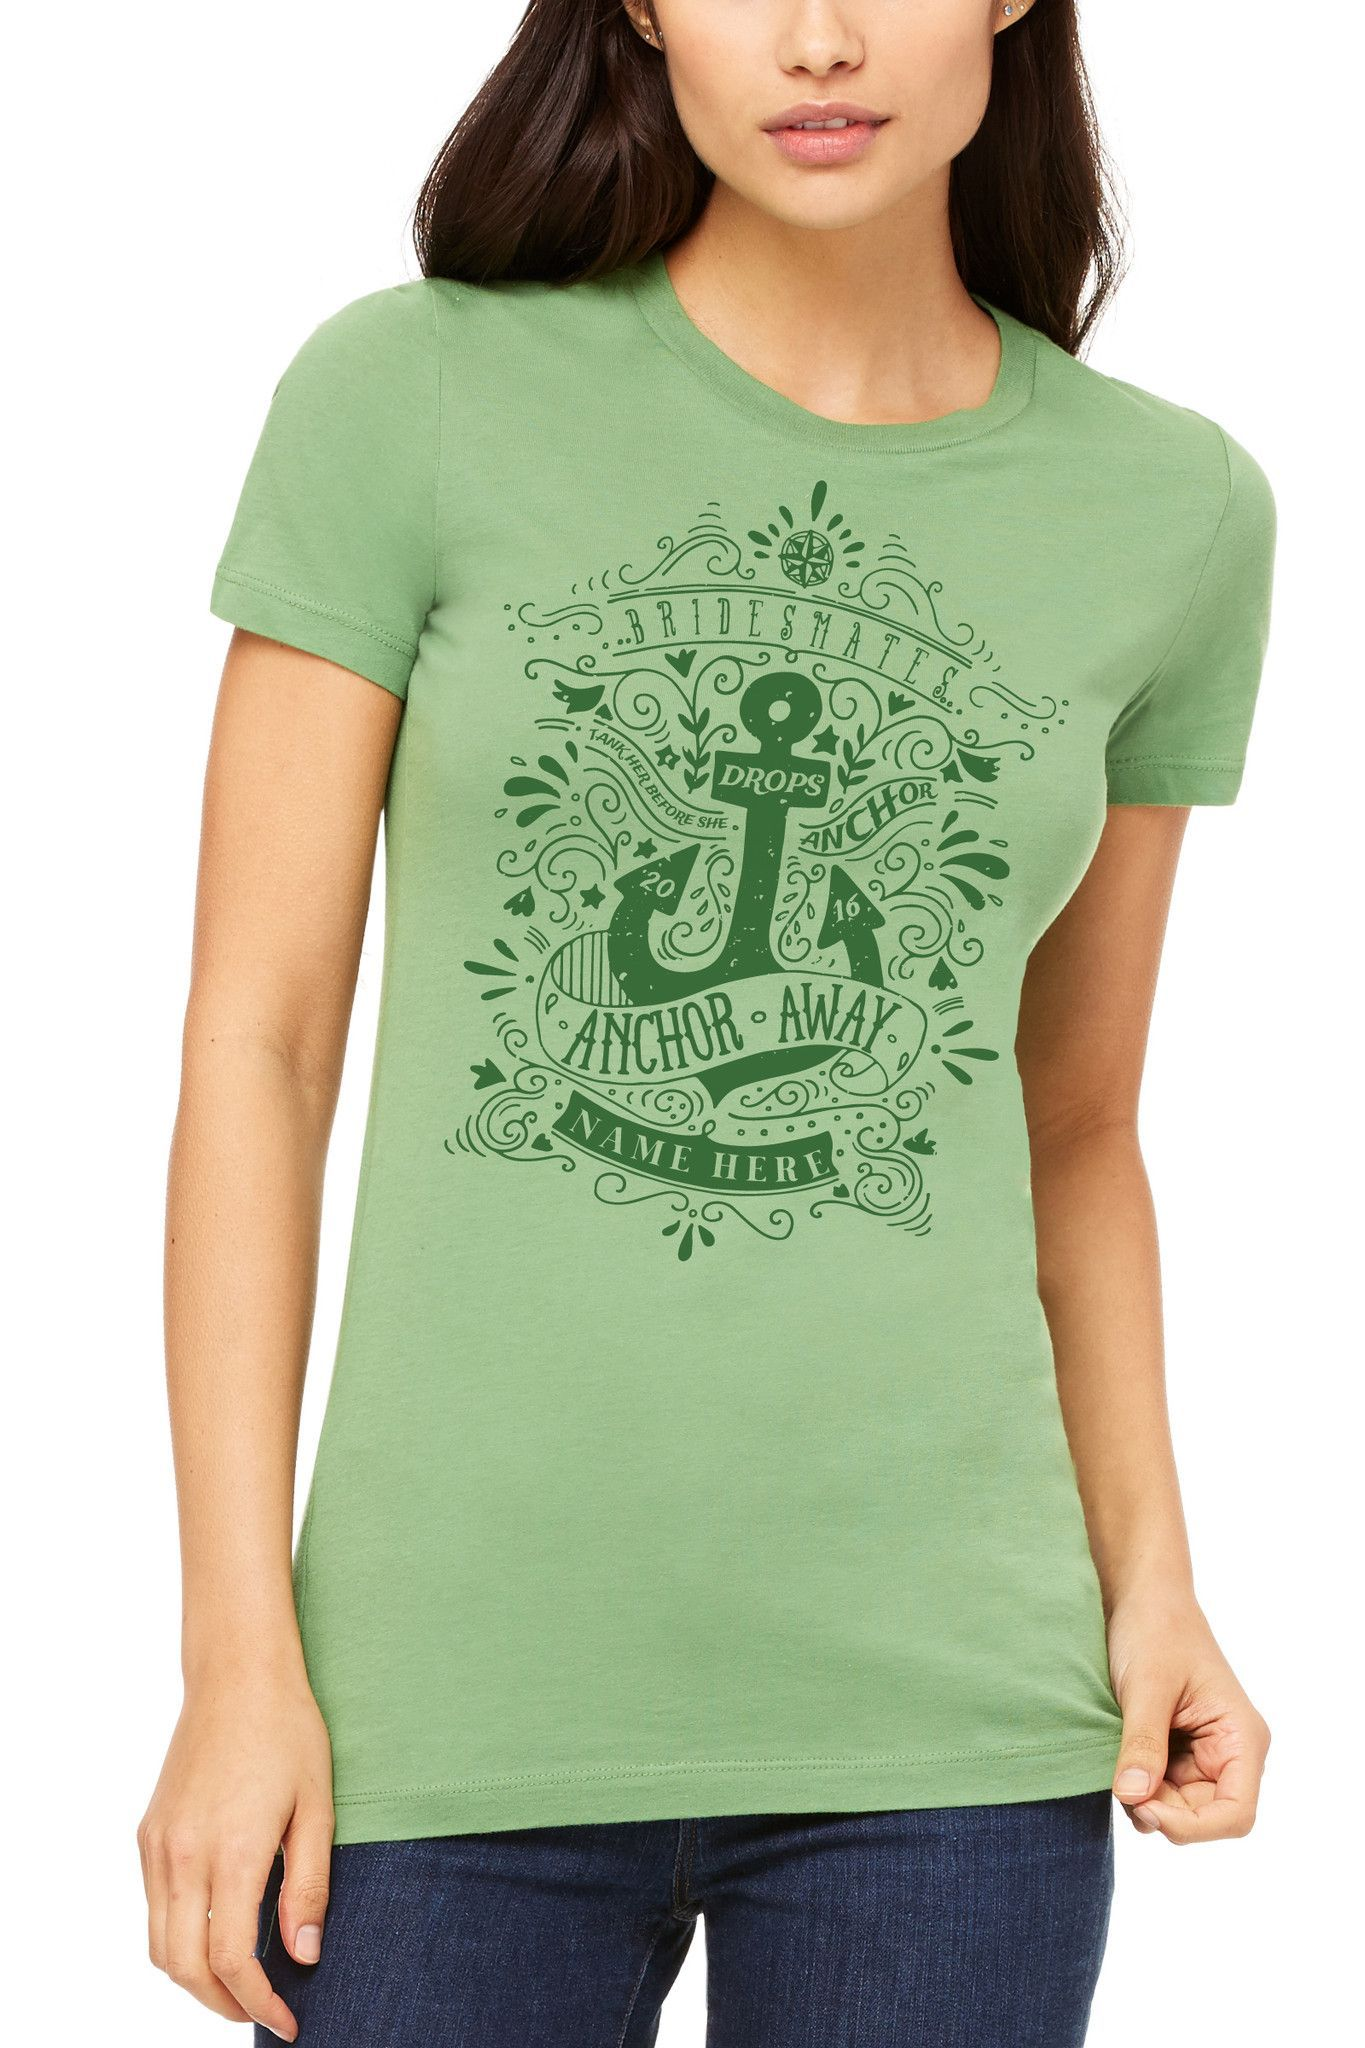 Bridesmates - Tank Her Before She Drops Anchor - Women's The Favorite Tee